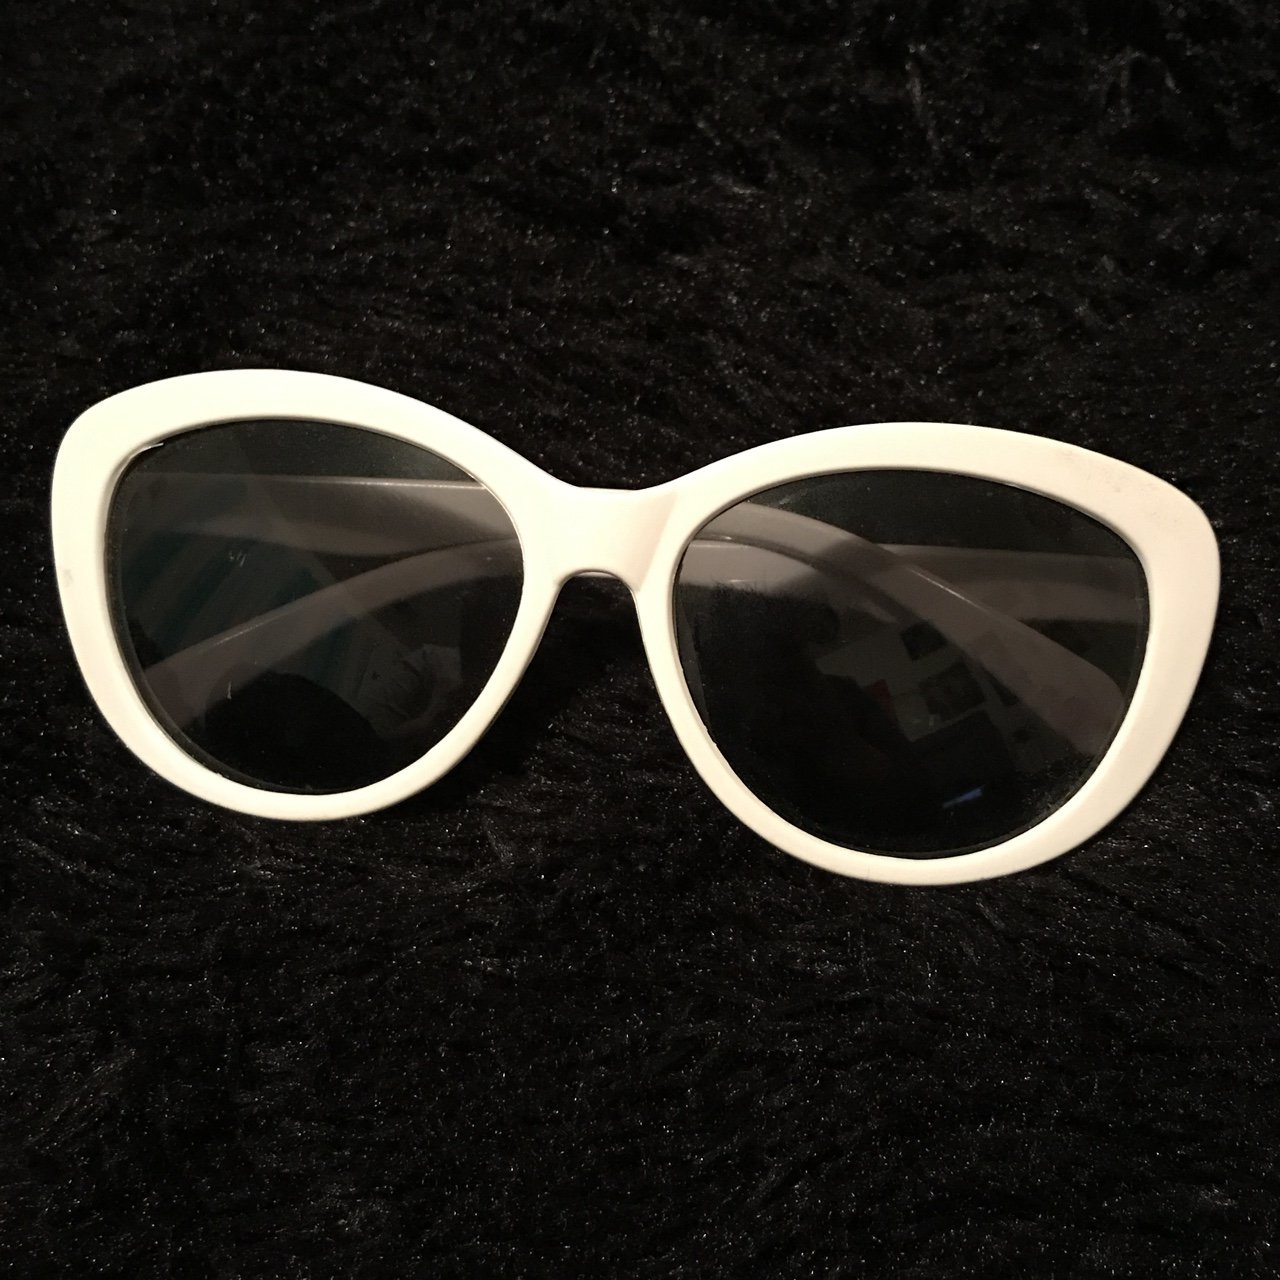 2c4d712ed54 clout goggles type glasses in white. no scratches. perfect - Depop